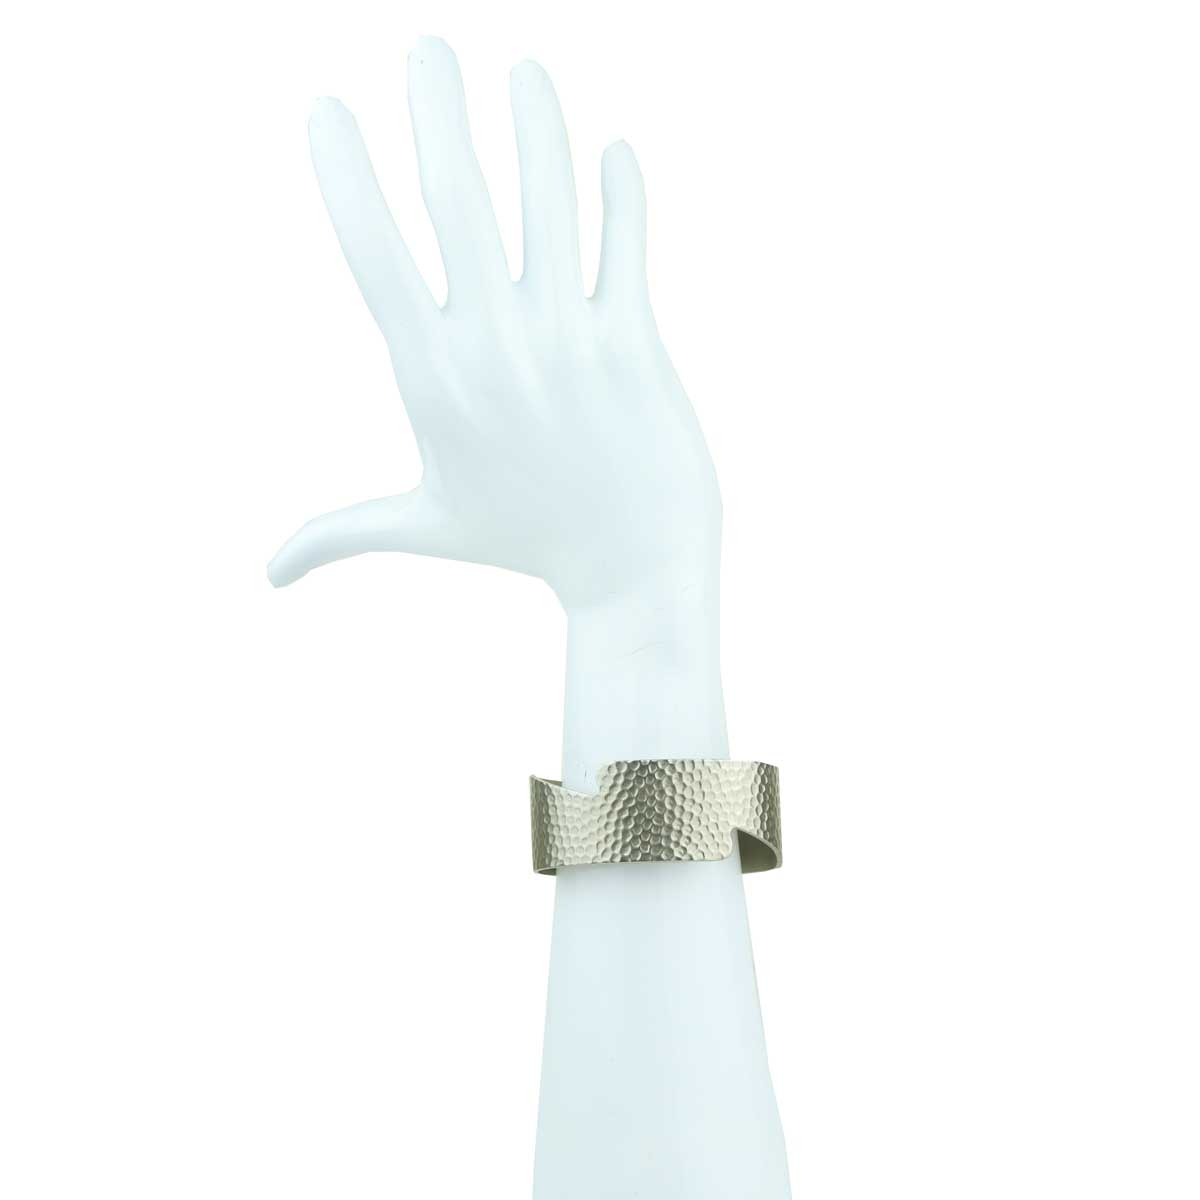 Selene Silver and Bronze Metal Pair of Cuff Bracelets